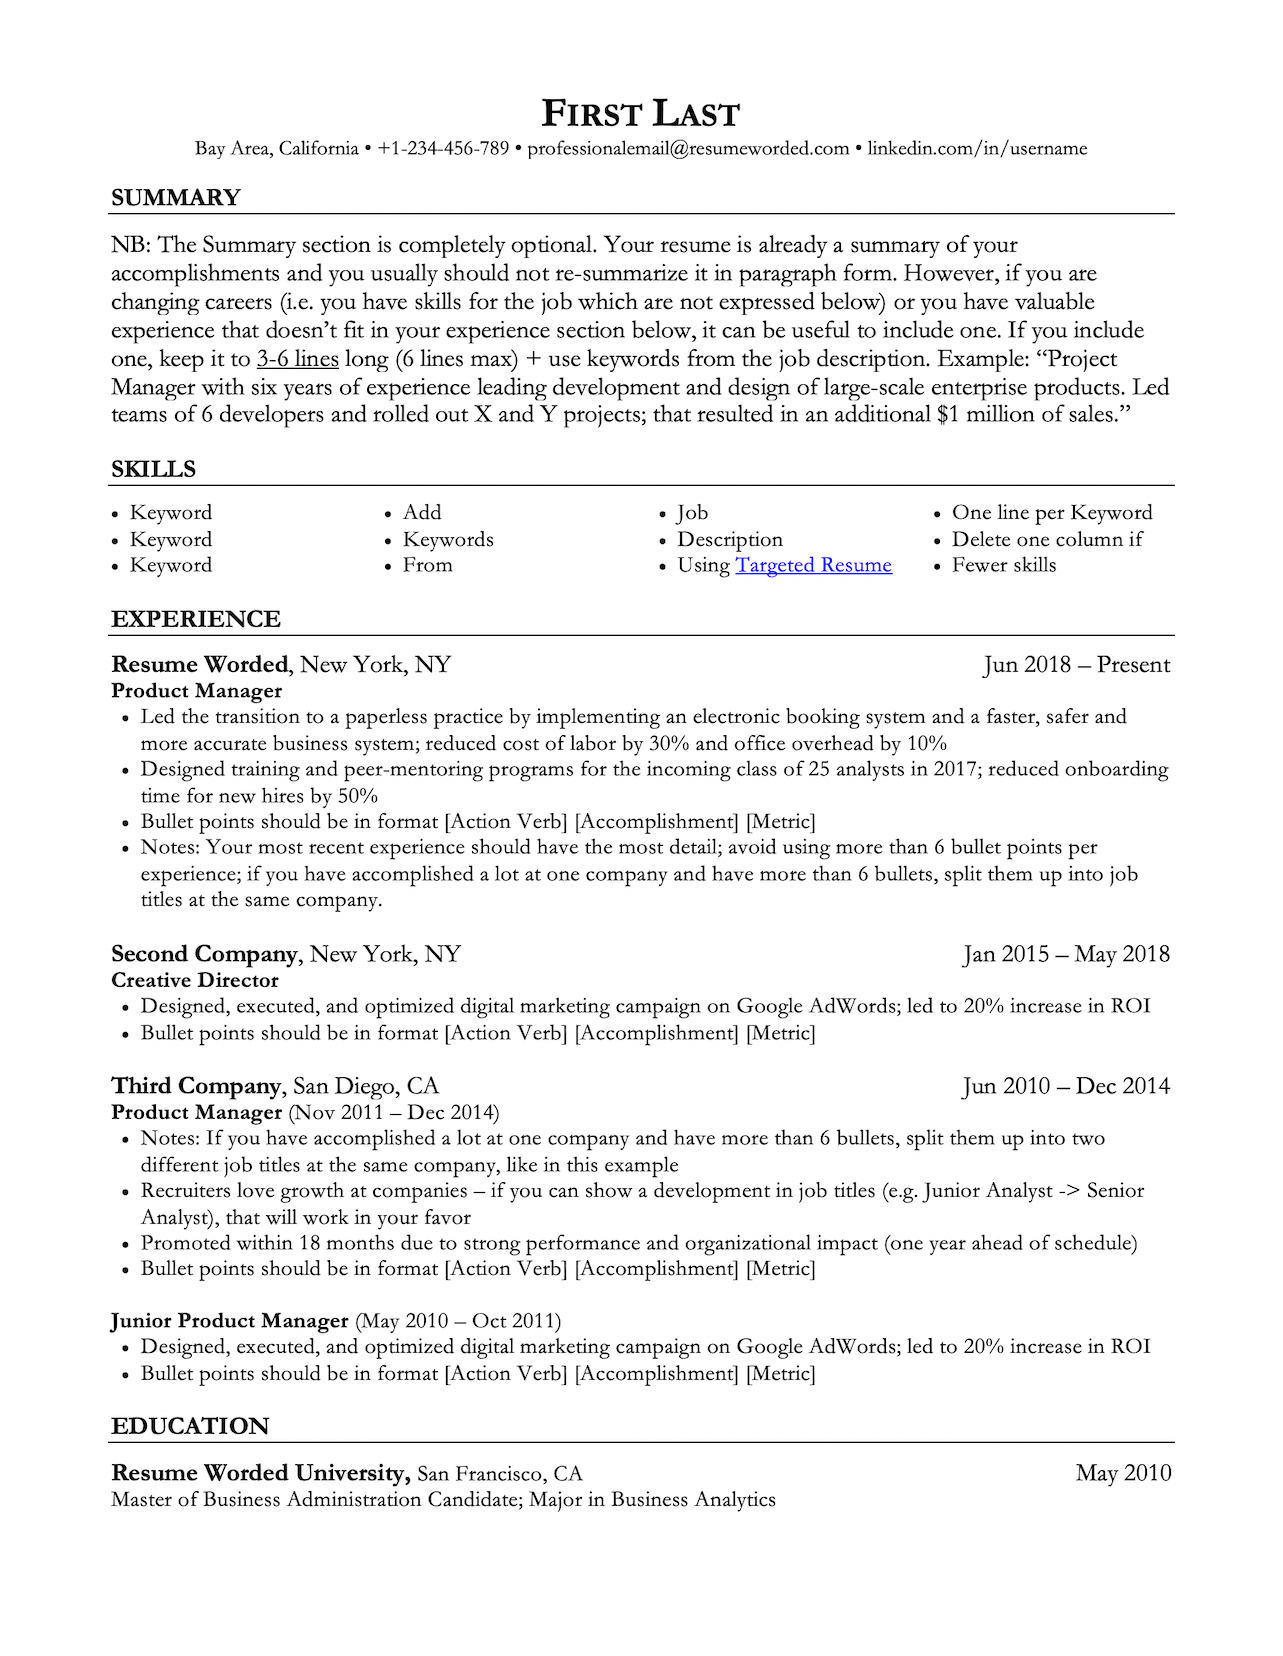 This template is great for professionals or career changers. A summary is useful on your resume if you are changing careers or want to cover skills that aren't in your Experience section. The Skills section is prioritized to highlight any keywords/skills.